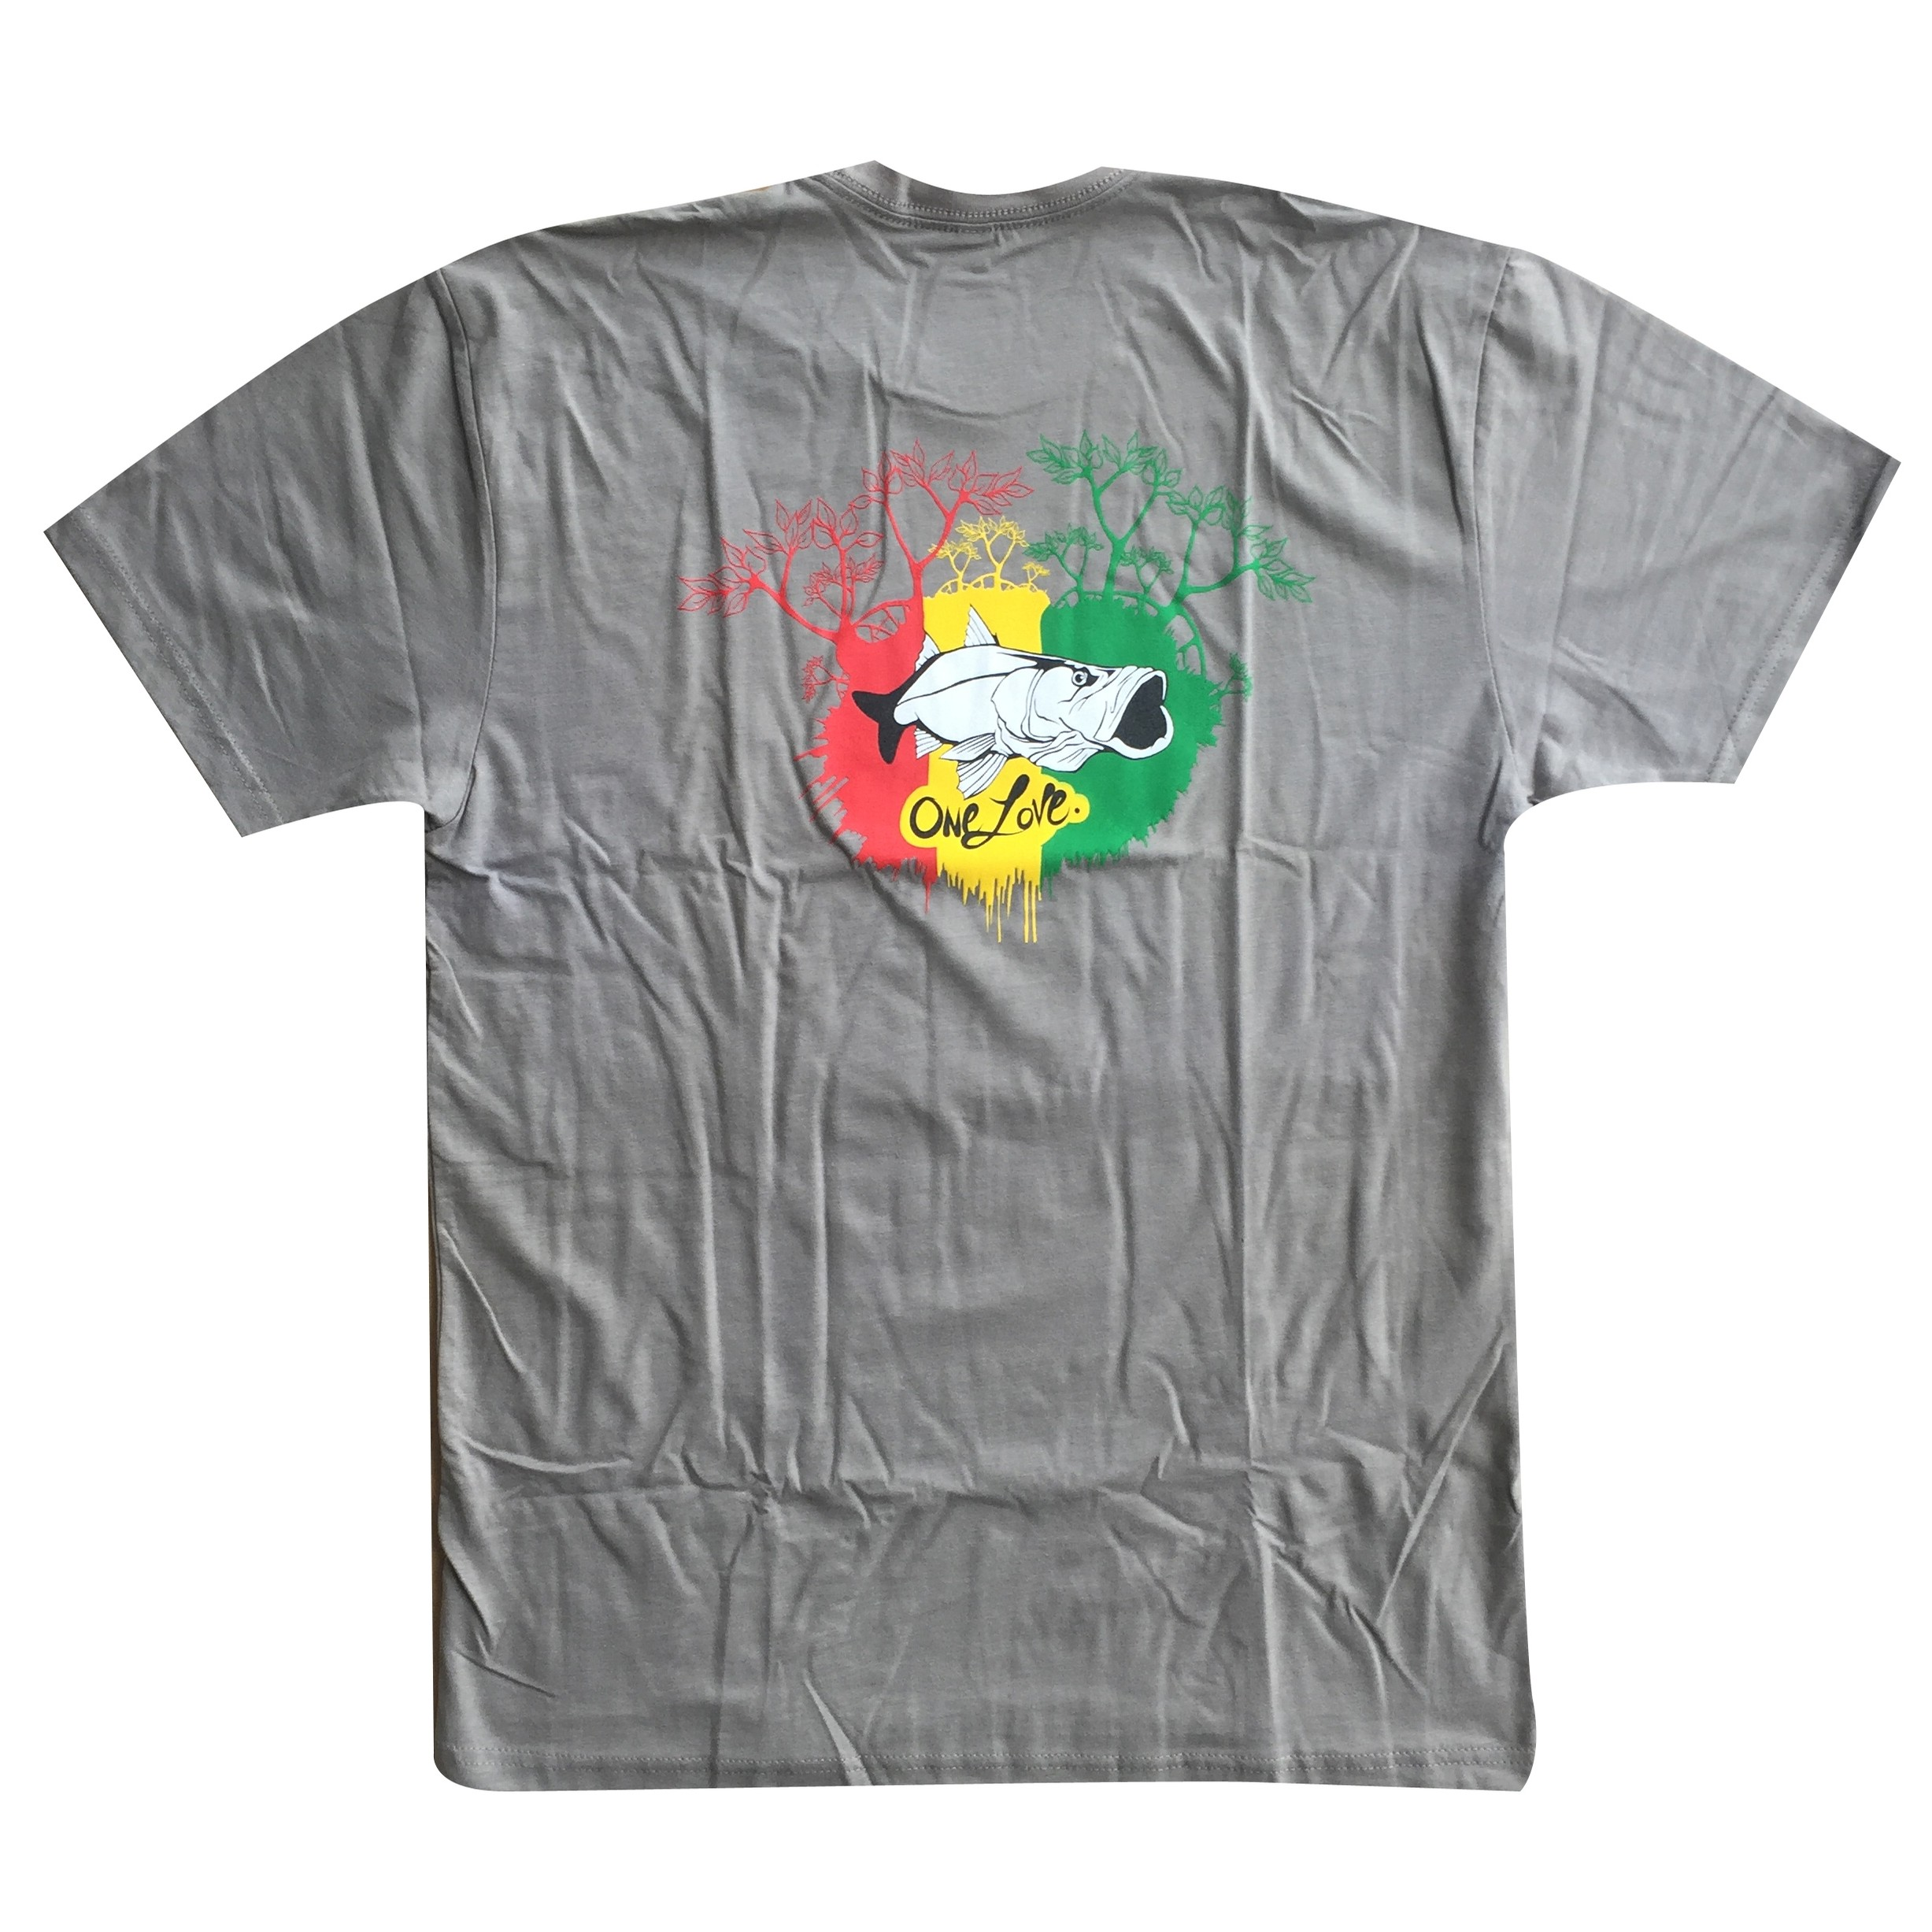 One Love Tee Grey